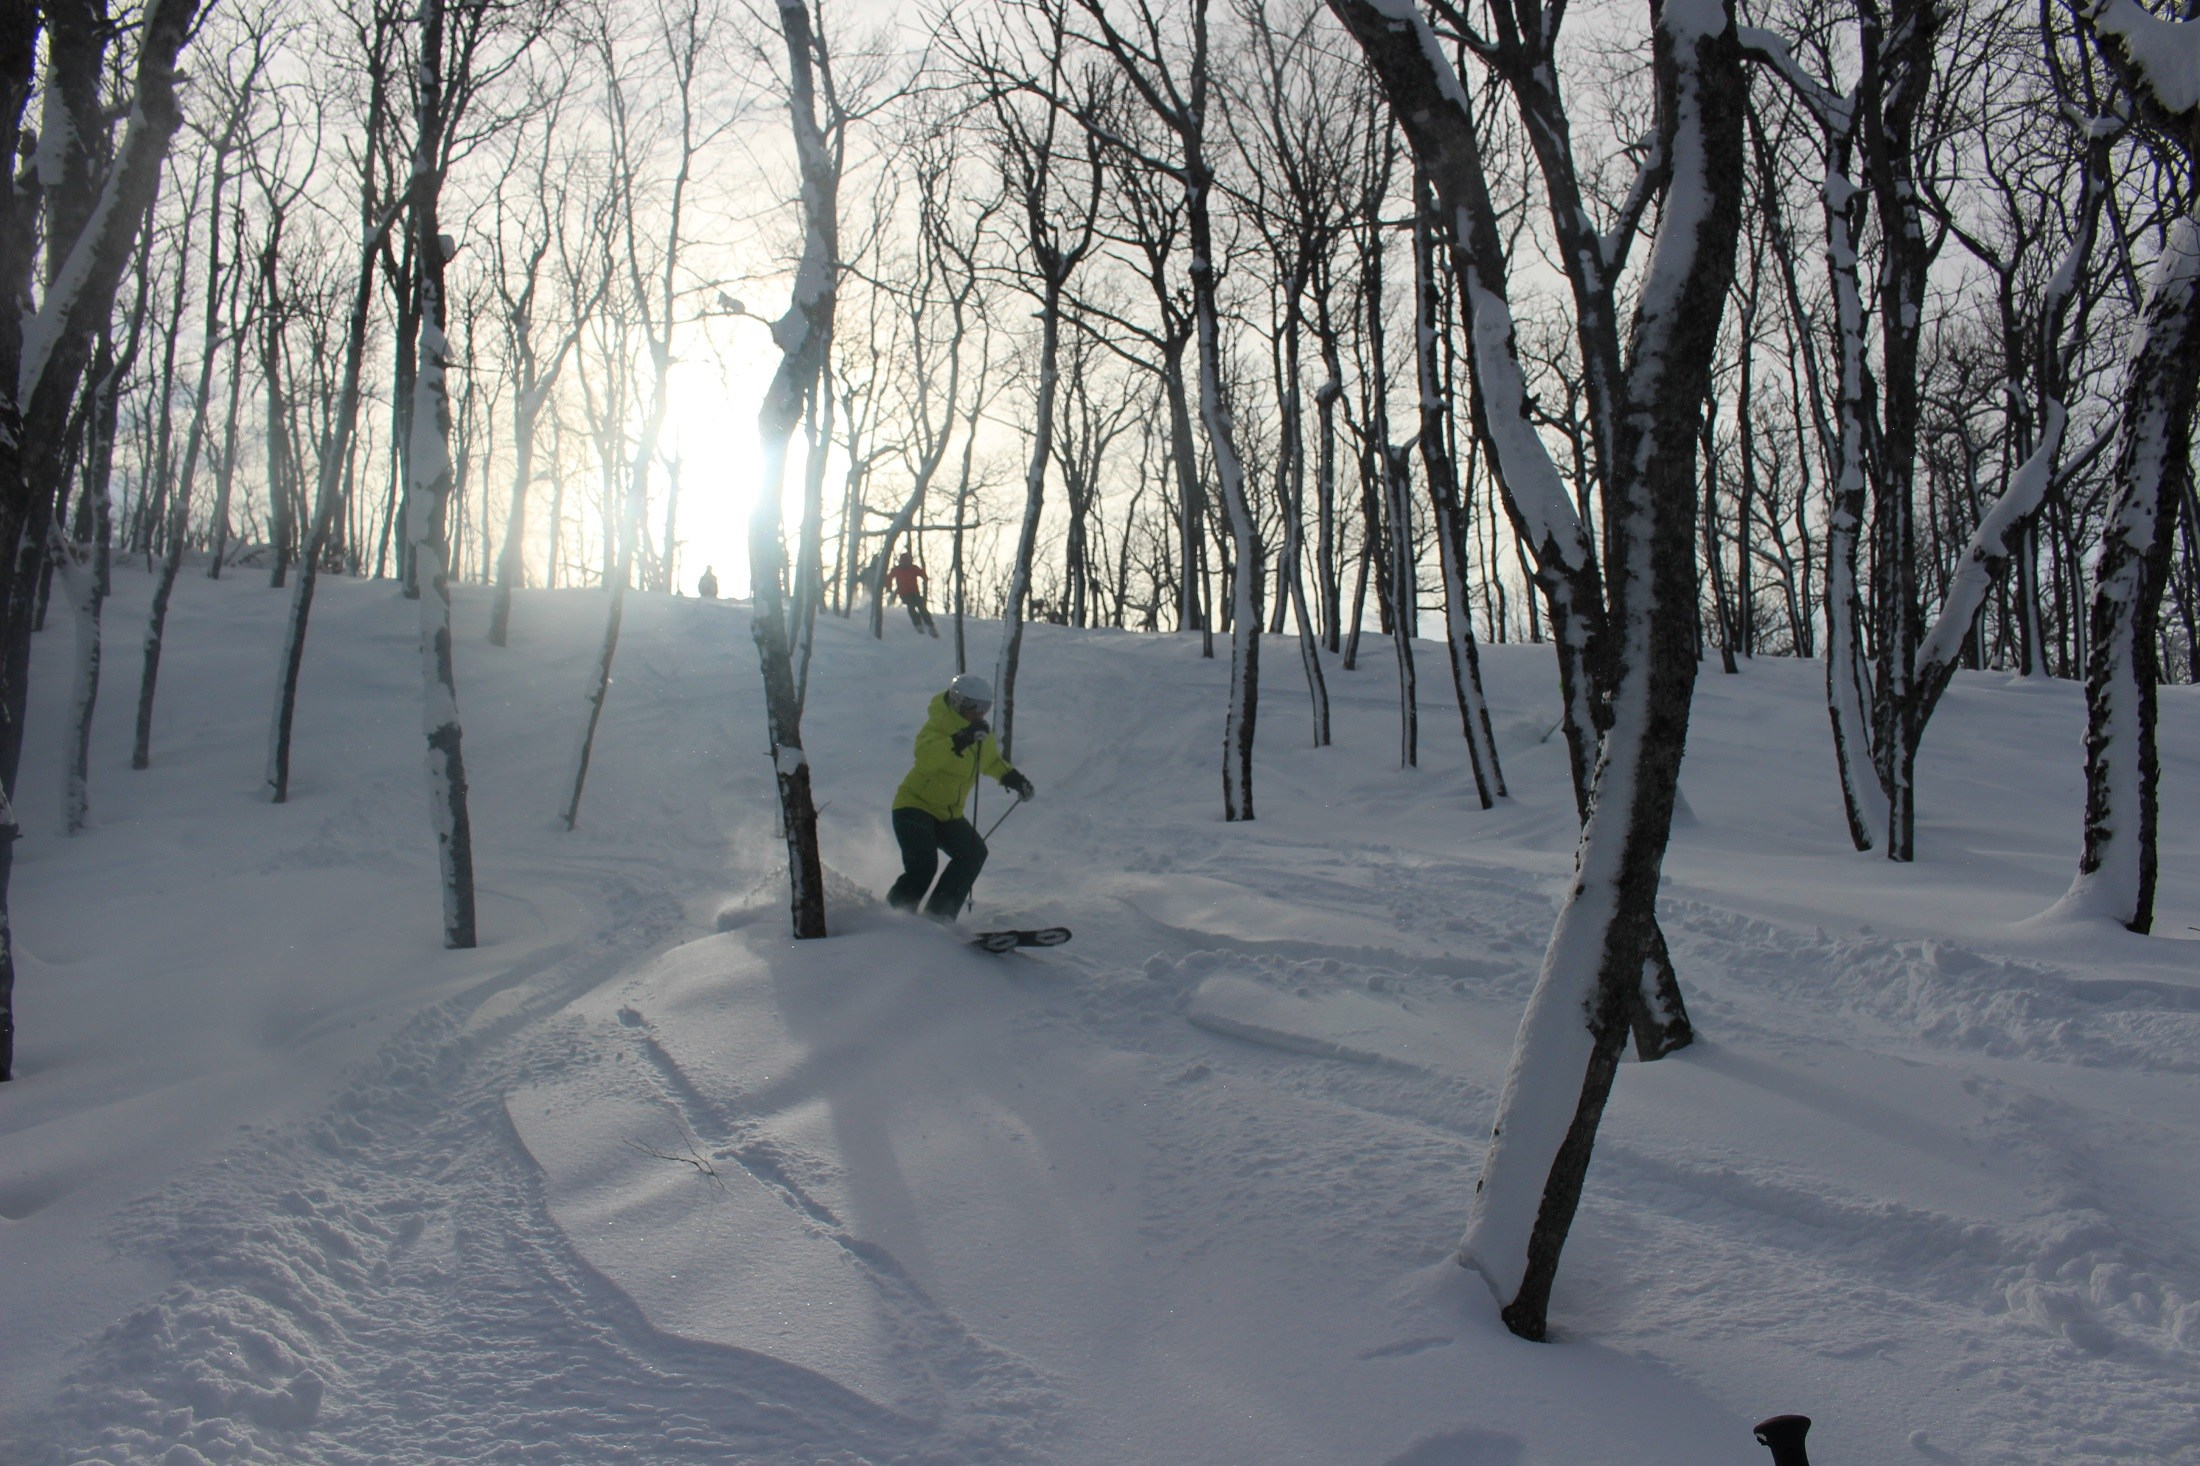 Voodoo Mountain midwest cat skiing Upper Peninsula Michigan skiing